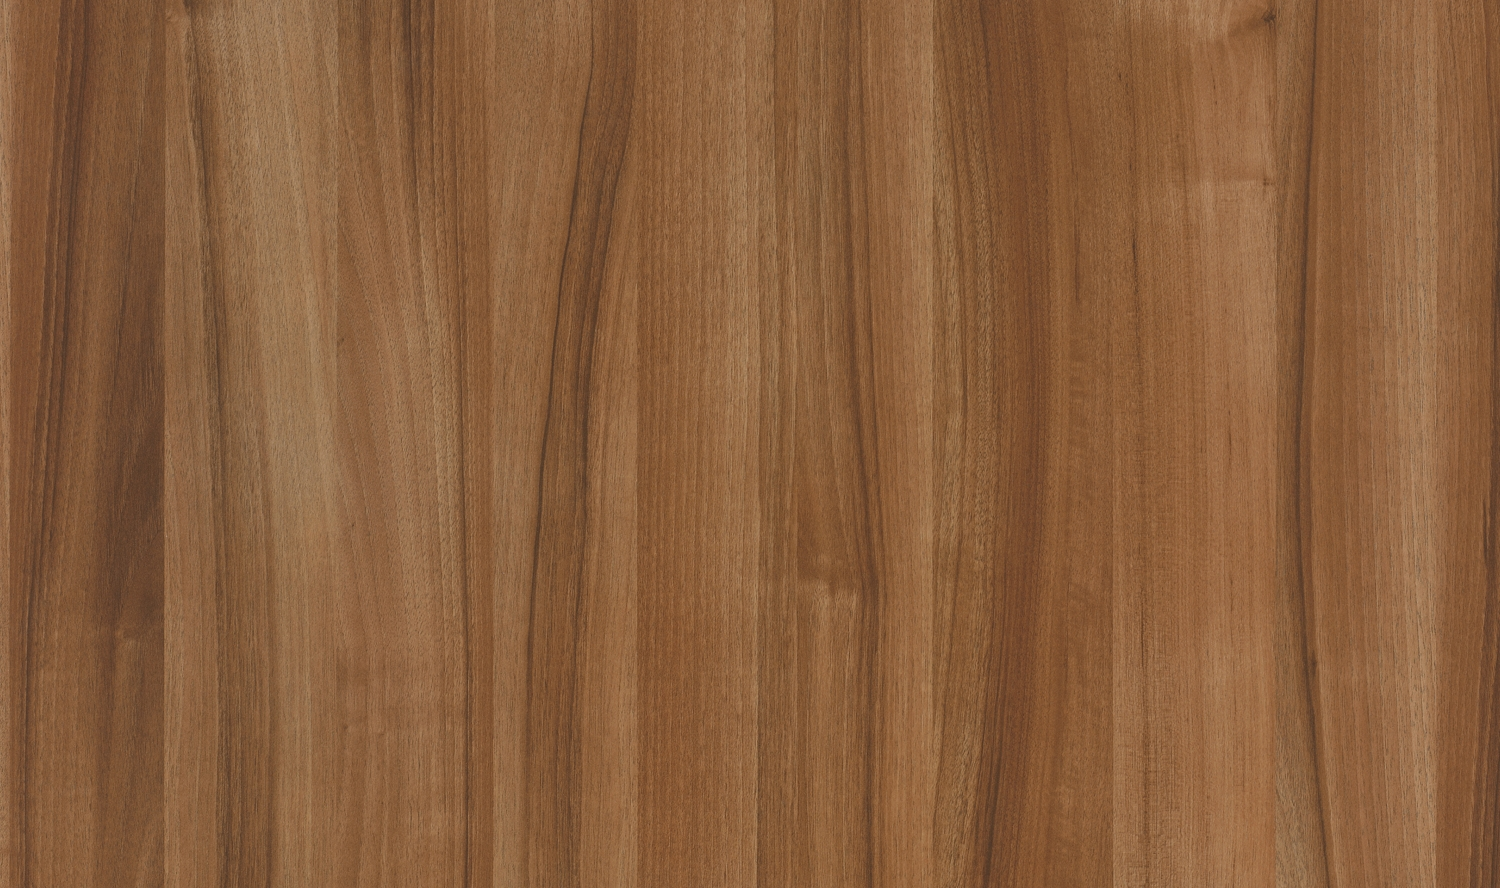 South Supreme Wooden Laminate Texture-Sundek International